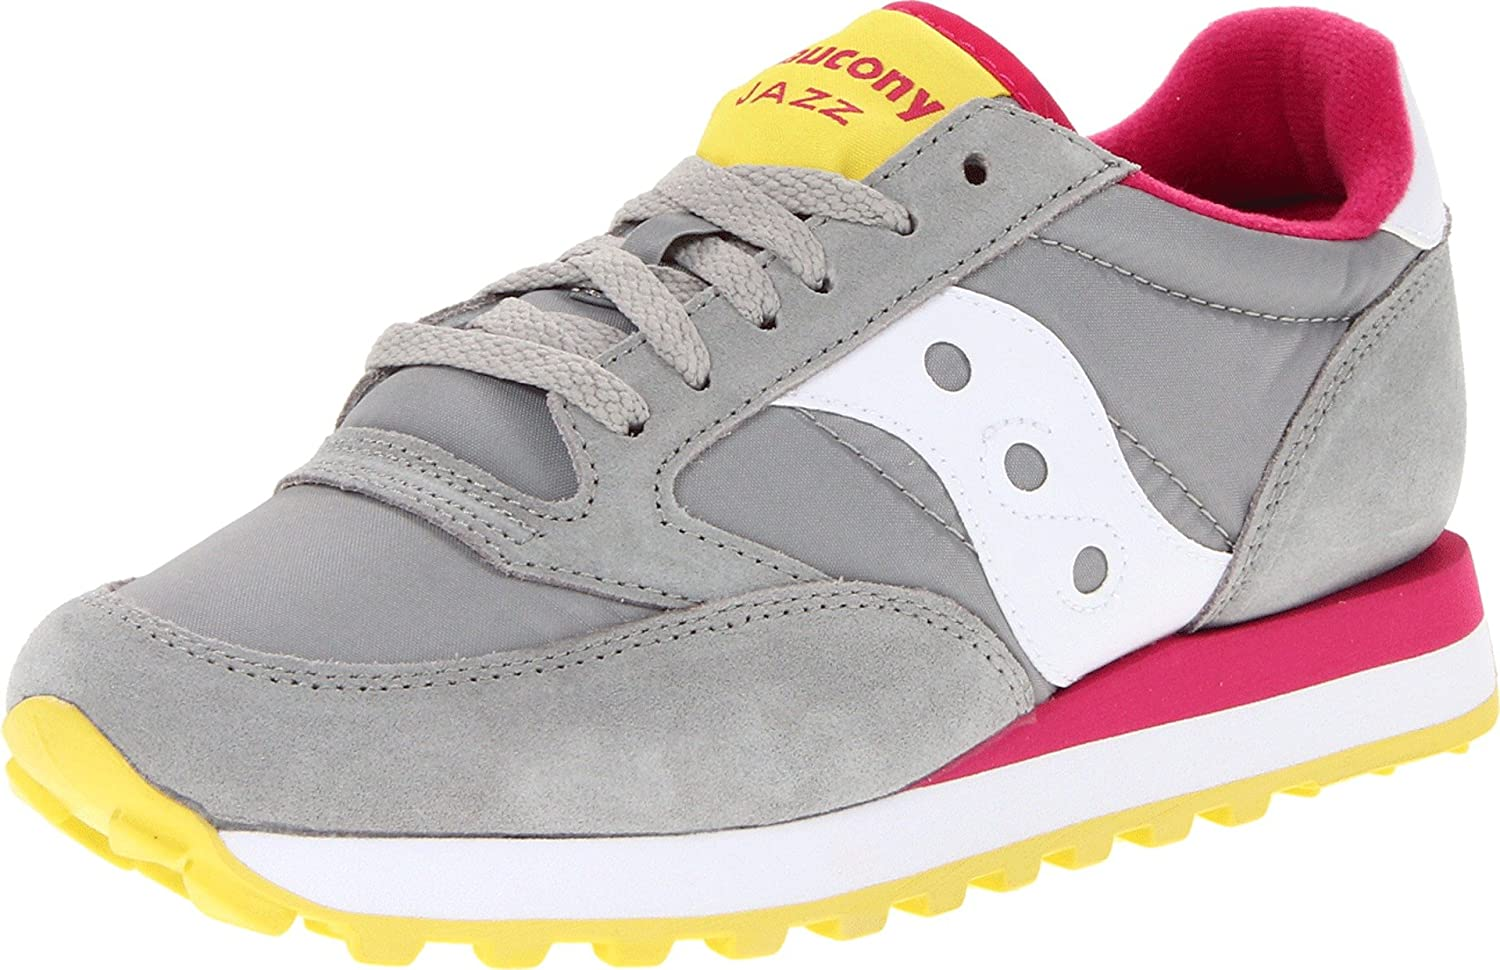 Saucony Originals Women's Jazz Original Sneaker B0083LPDKU 10 B(M) US|Grey/Pink/White